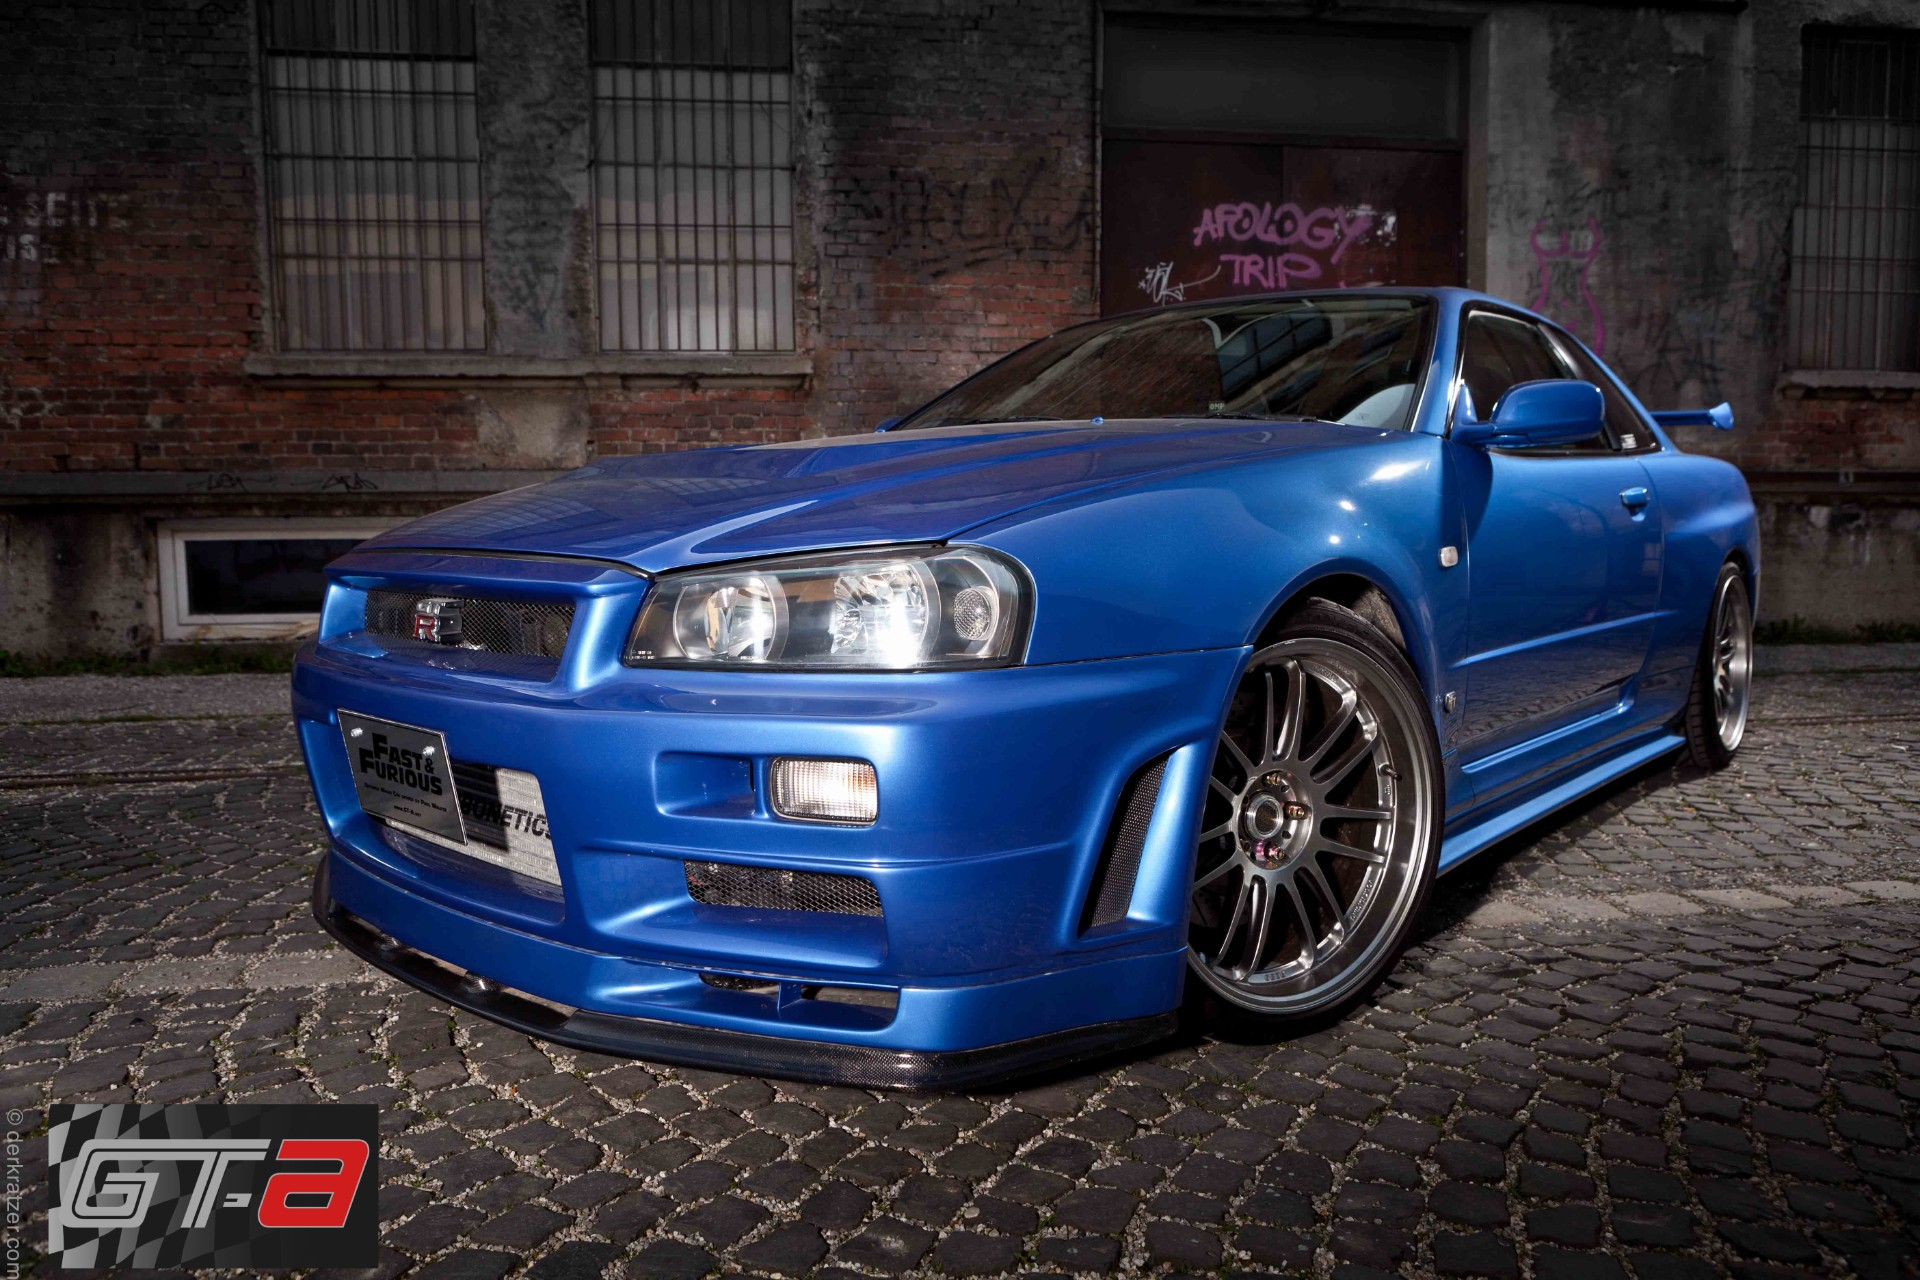 Anderson Ford Mazda >> Paul Walker's Nissan Skyline GT-R - front photo, blue ...